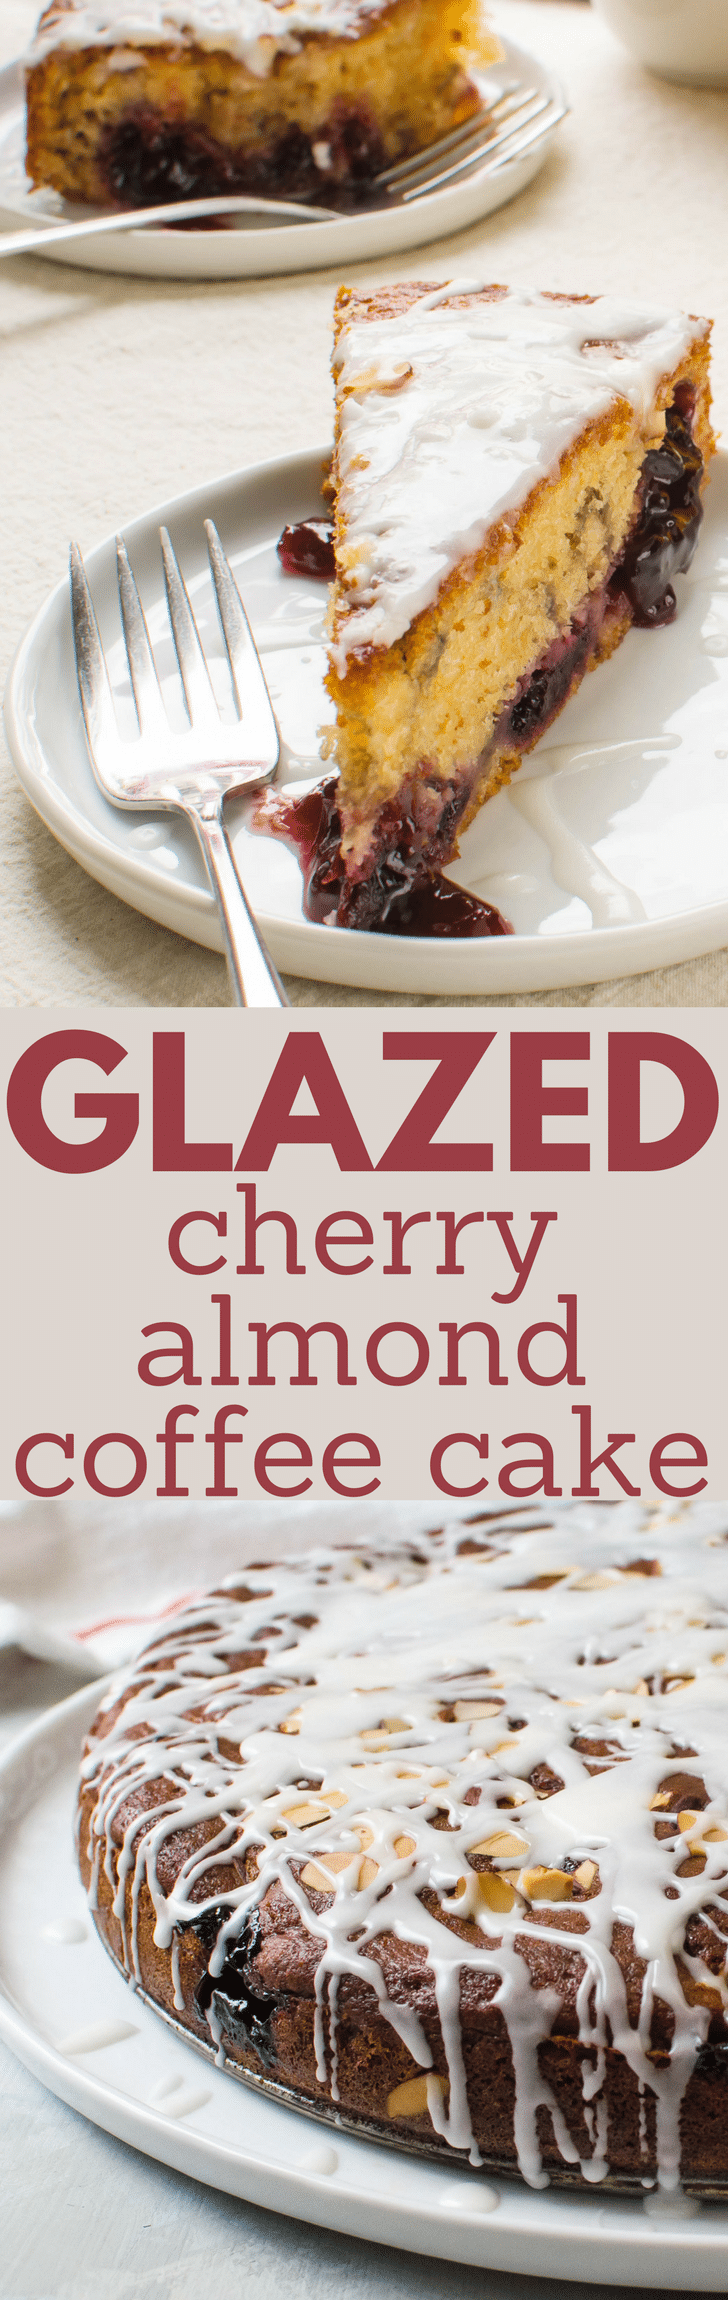 Need a homemade coffee cake for brunch? Glazed Cherry Almond Coffee Cake is always a favorite! Perfect for Easter Brunch or Mother's Day breakfast in bed, this moist coffee cake recipe is a showstopper. #coffeecake #dessert #cake #cherries #almonds #easter #mothersday #cherrycoffeecake #almondcoffeecake #coffeecakerecipe #christmas #valentinesday #breakfast #brunch #glazed